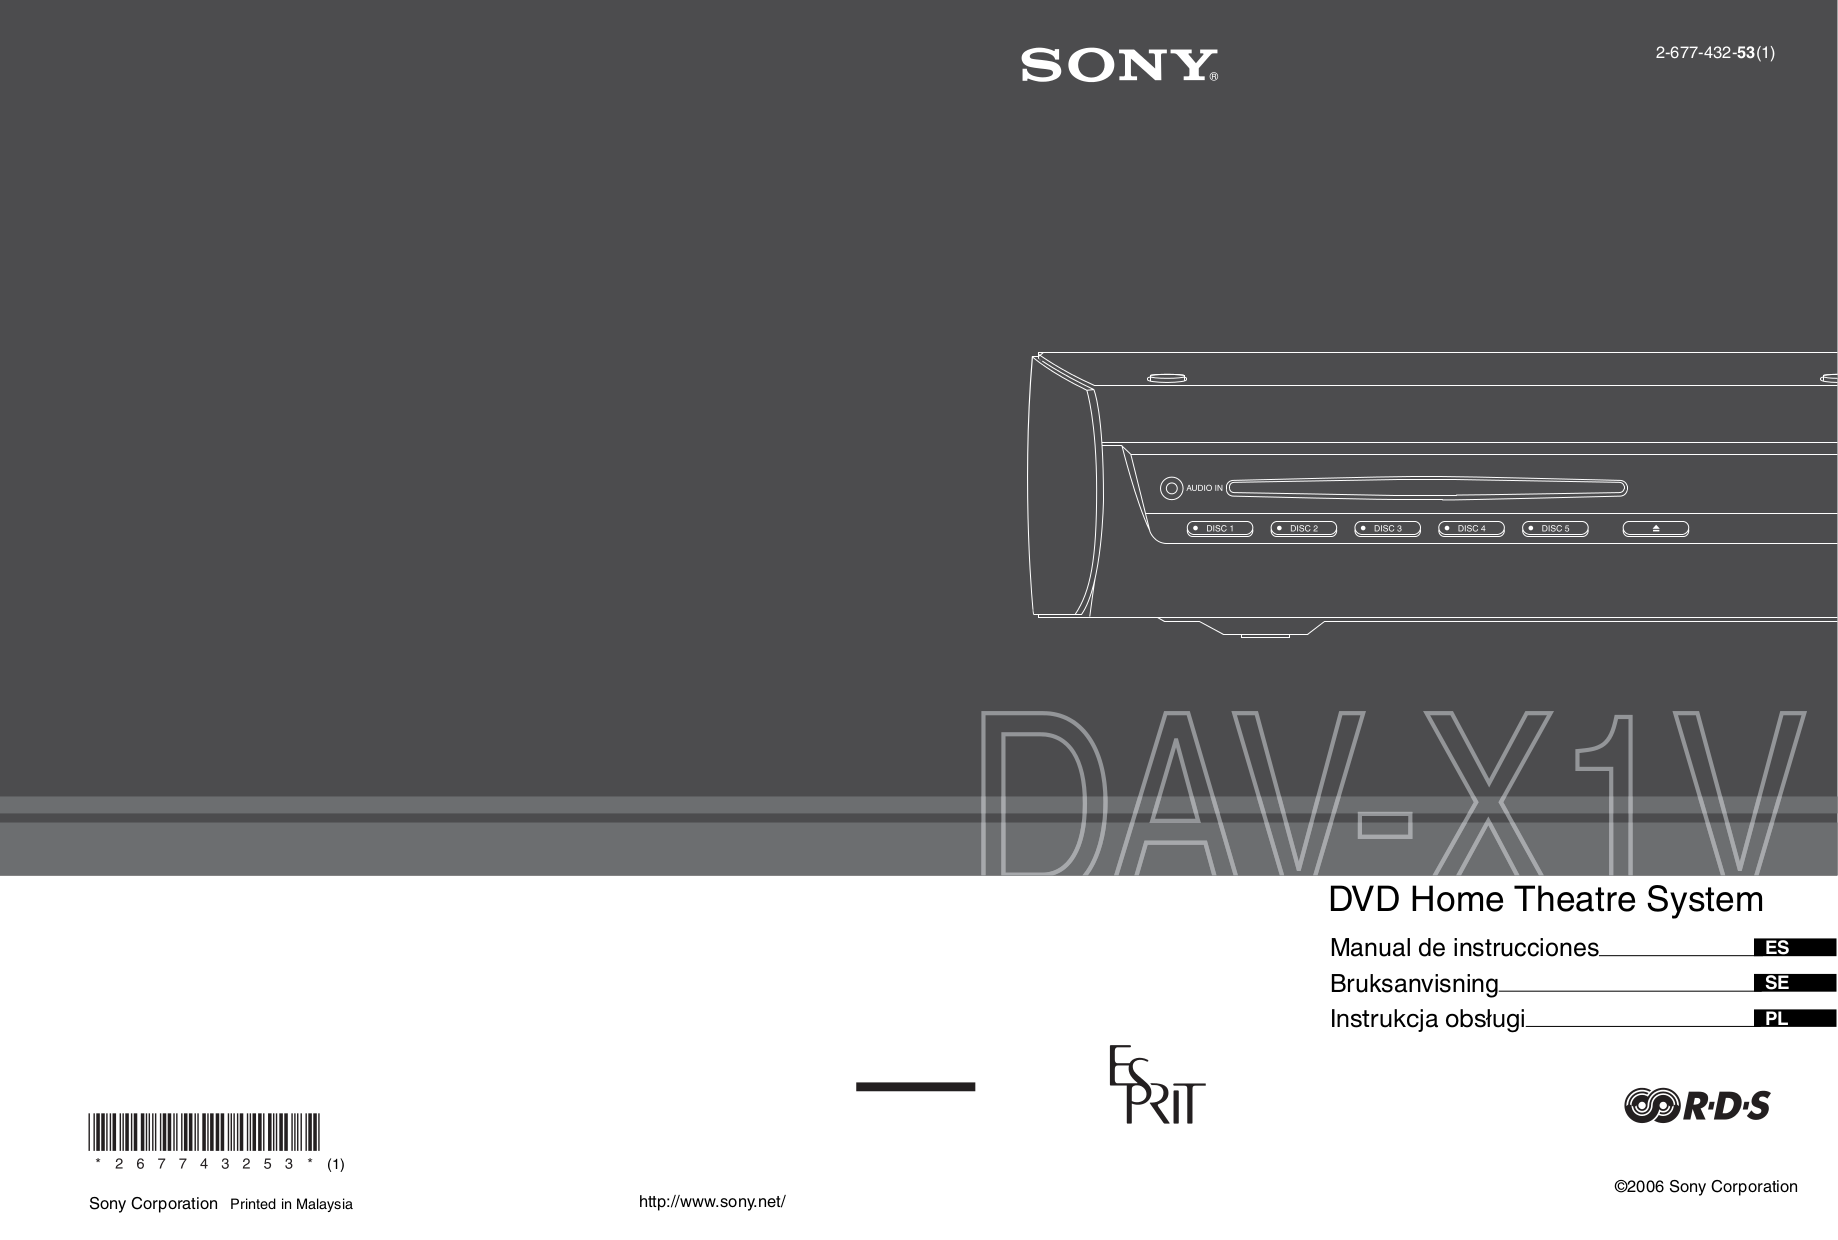 Sony dav-dx250 integrated dvd system manual.